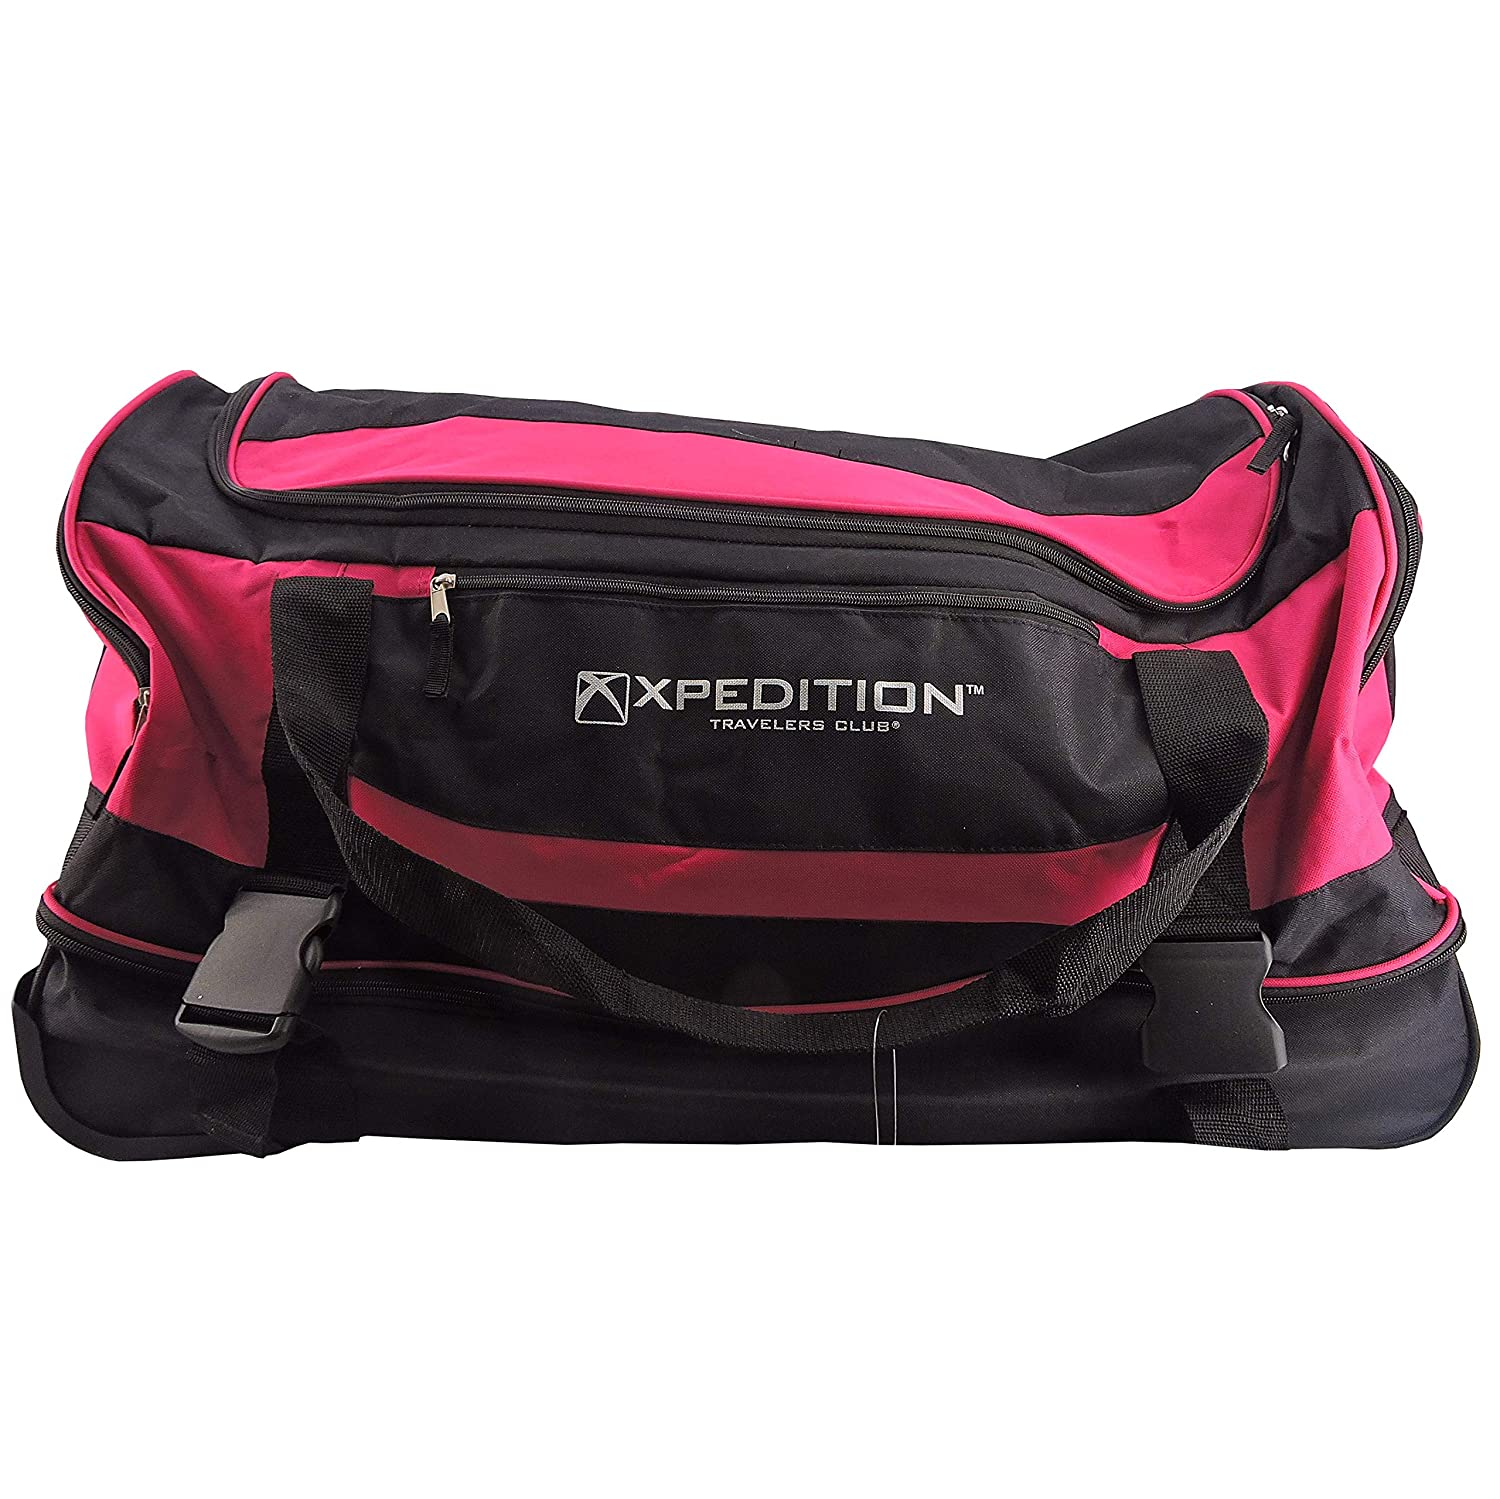 Xpedition Travelers Club 30IN Drop-bottom Rolling Duffel Bag Luggage Suitcase in Pink